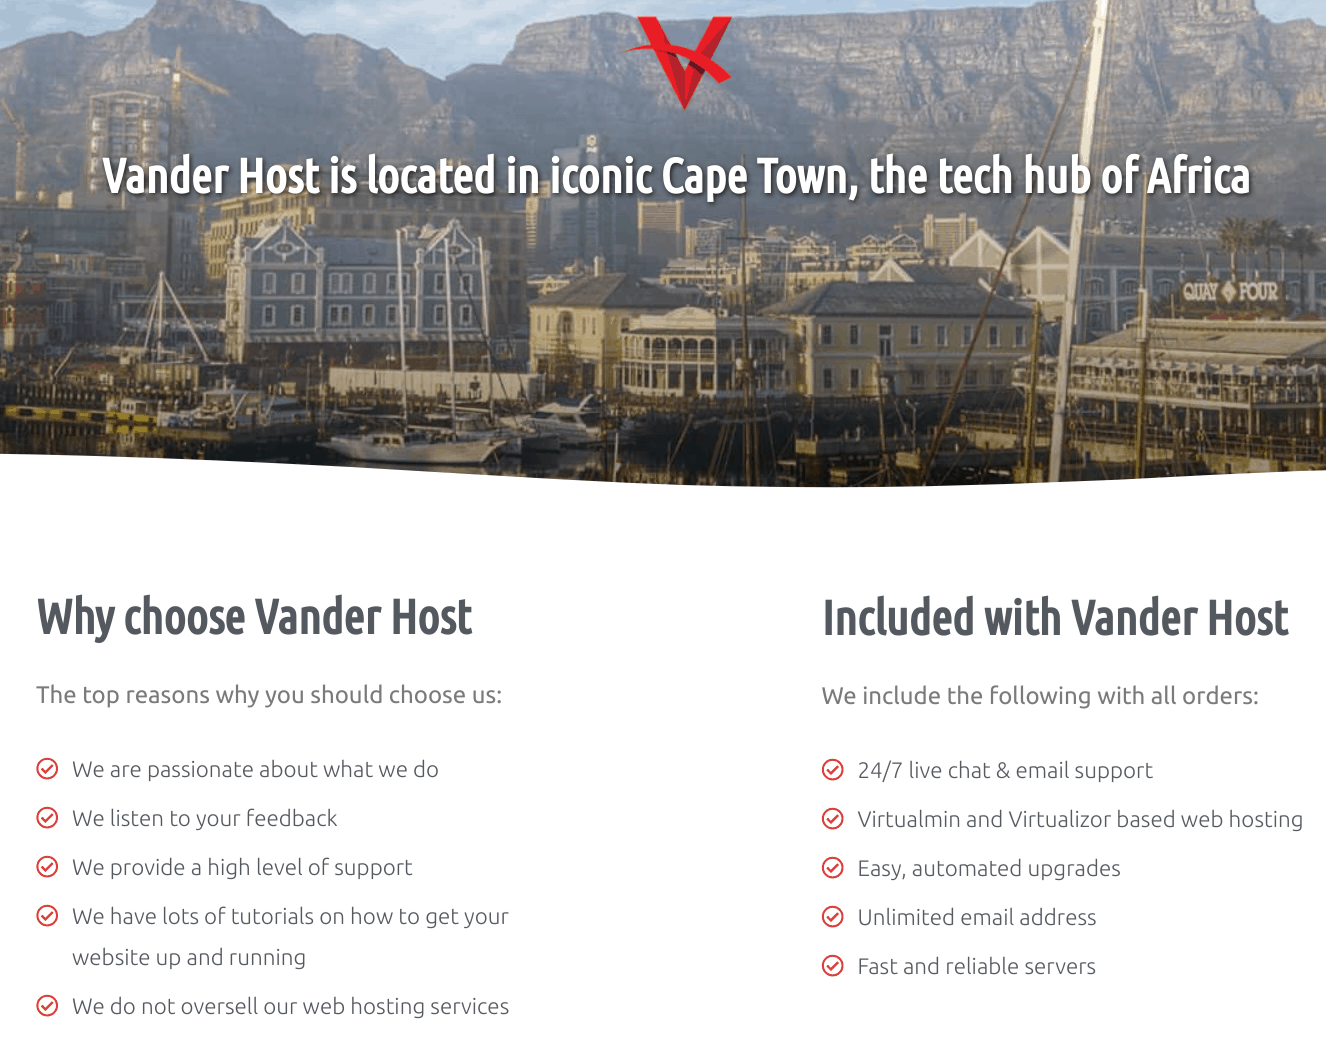 Vander Host Overview